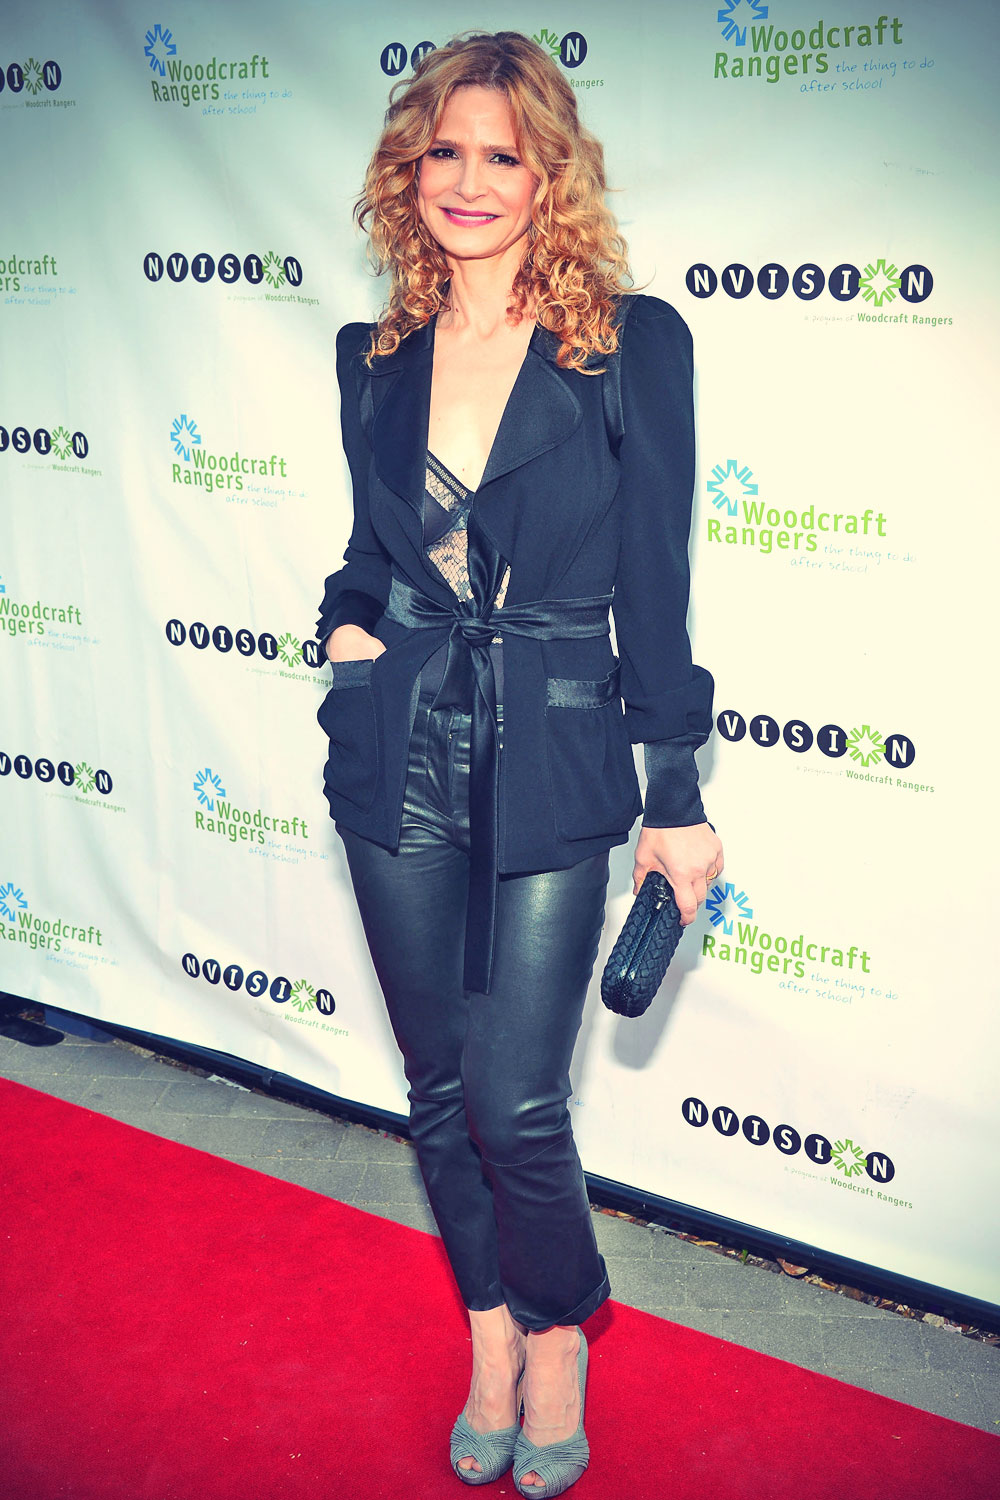 Kyra Sedgwick arrives to host the Woodcraft Rangers 90th anniversary gala